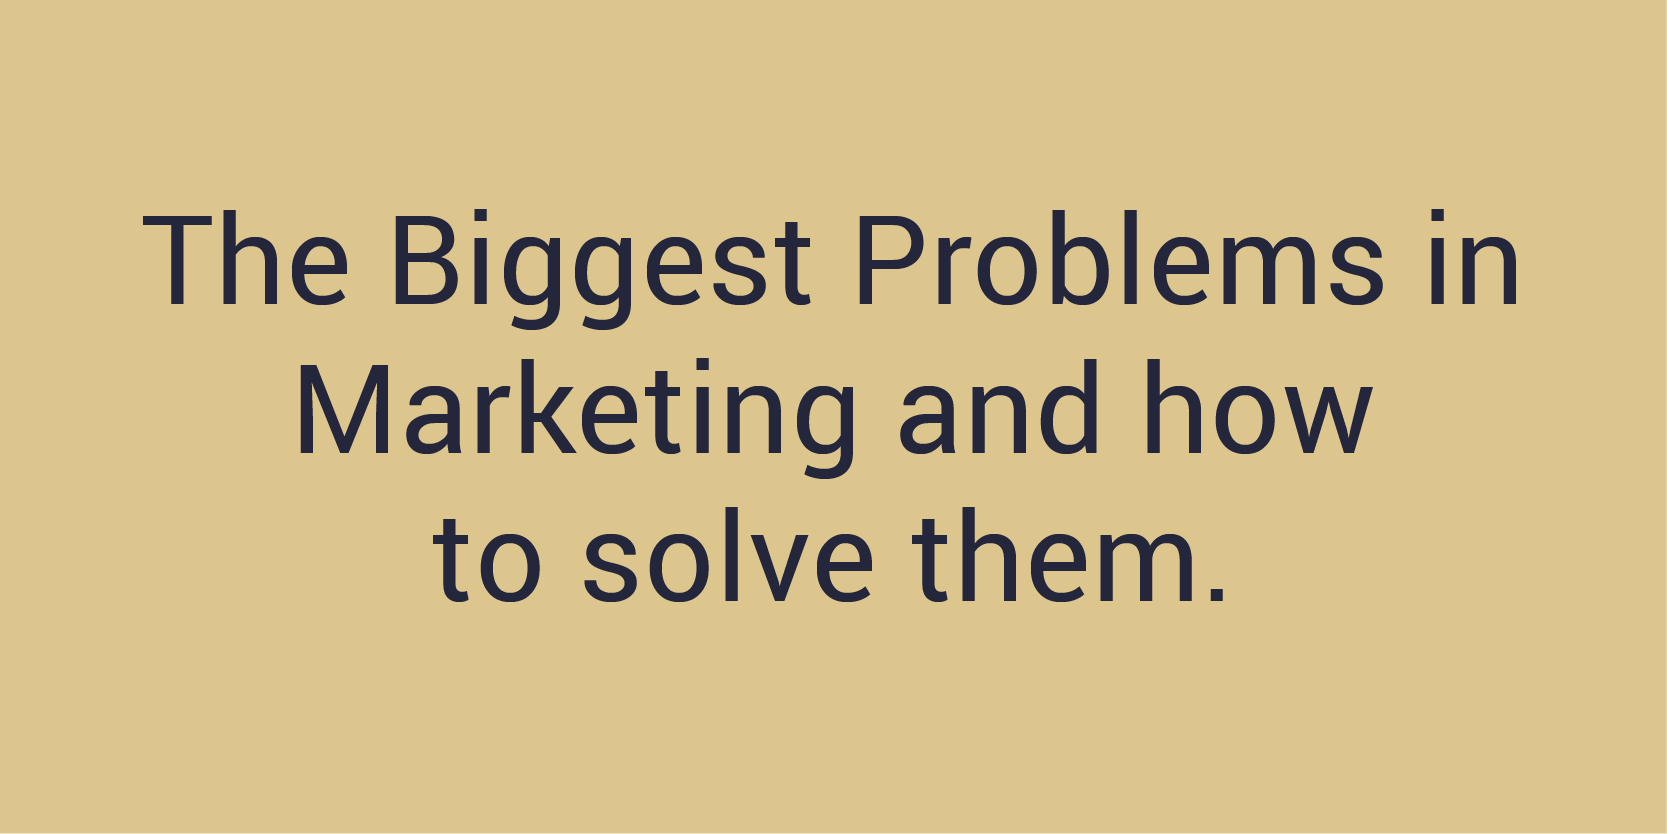 The Biggest Problems in Marketing and how to solve them.